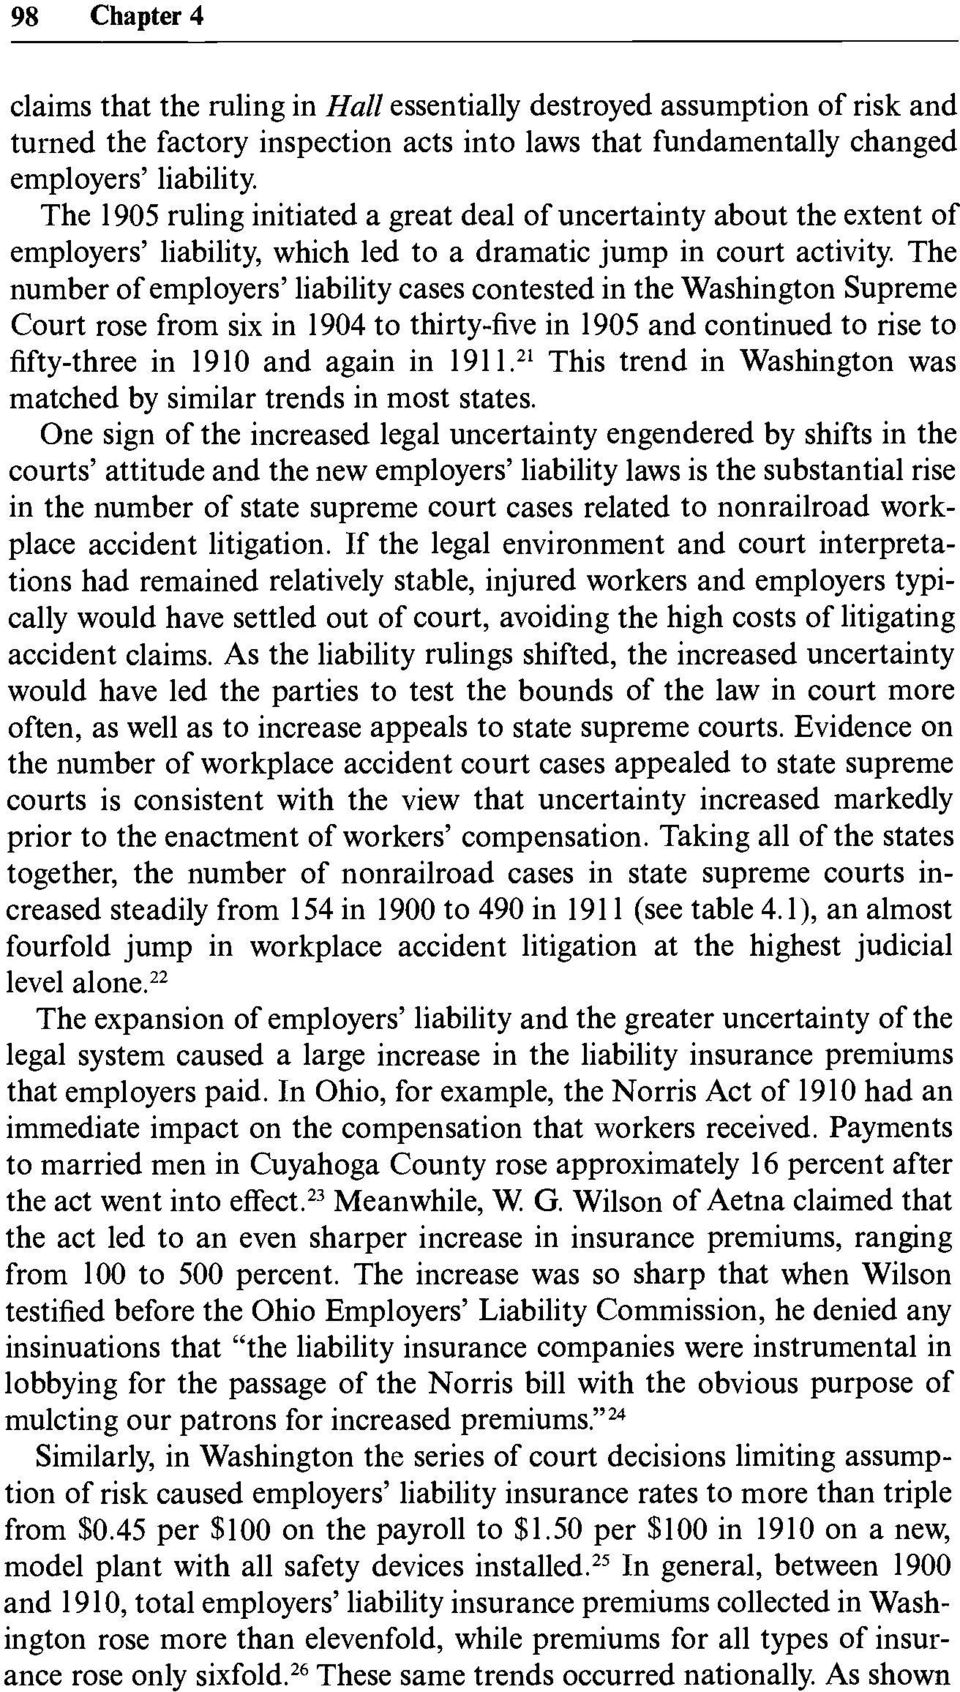 The number of employers' liability cases contested in the Washington Supreme Court rose from six in 1904 to thirty-five in 1905 and continued to rise to fifty-three in 1910 and again in 1911.